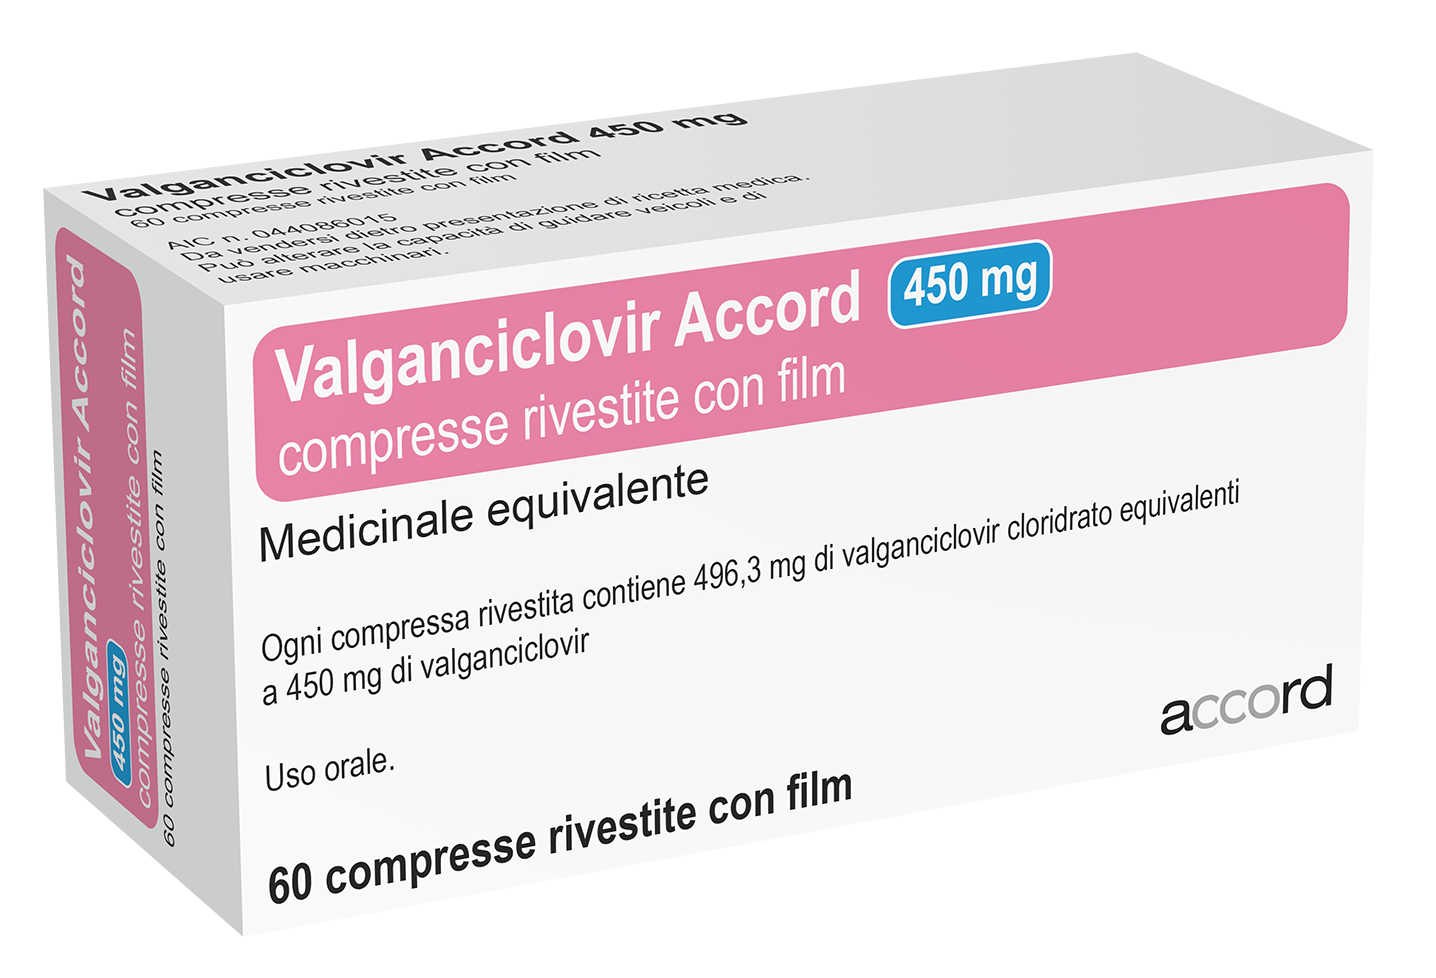 VALGANCICLOVIR ACCORD